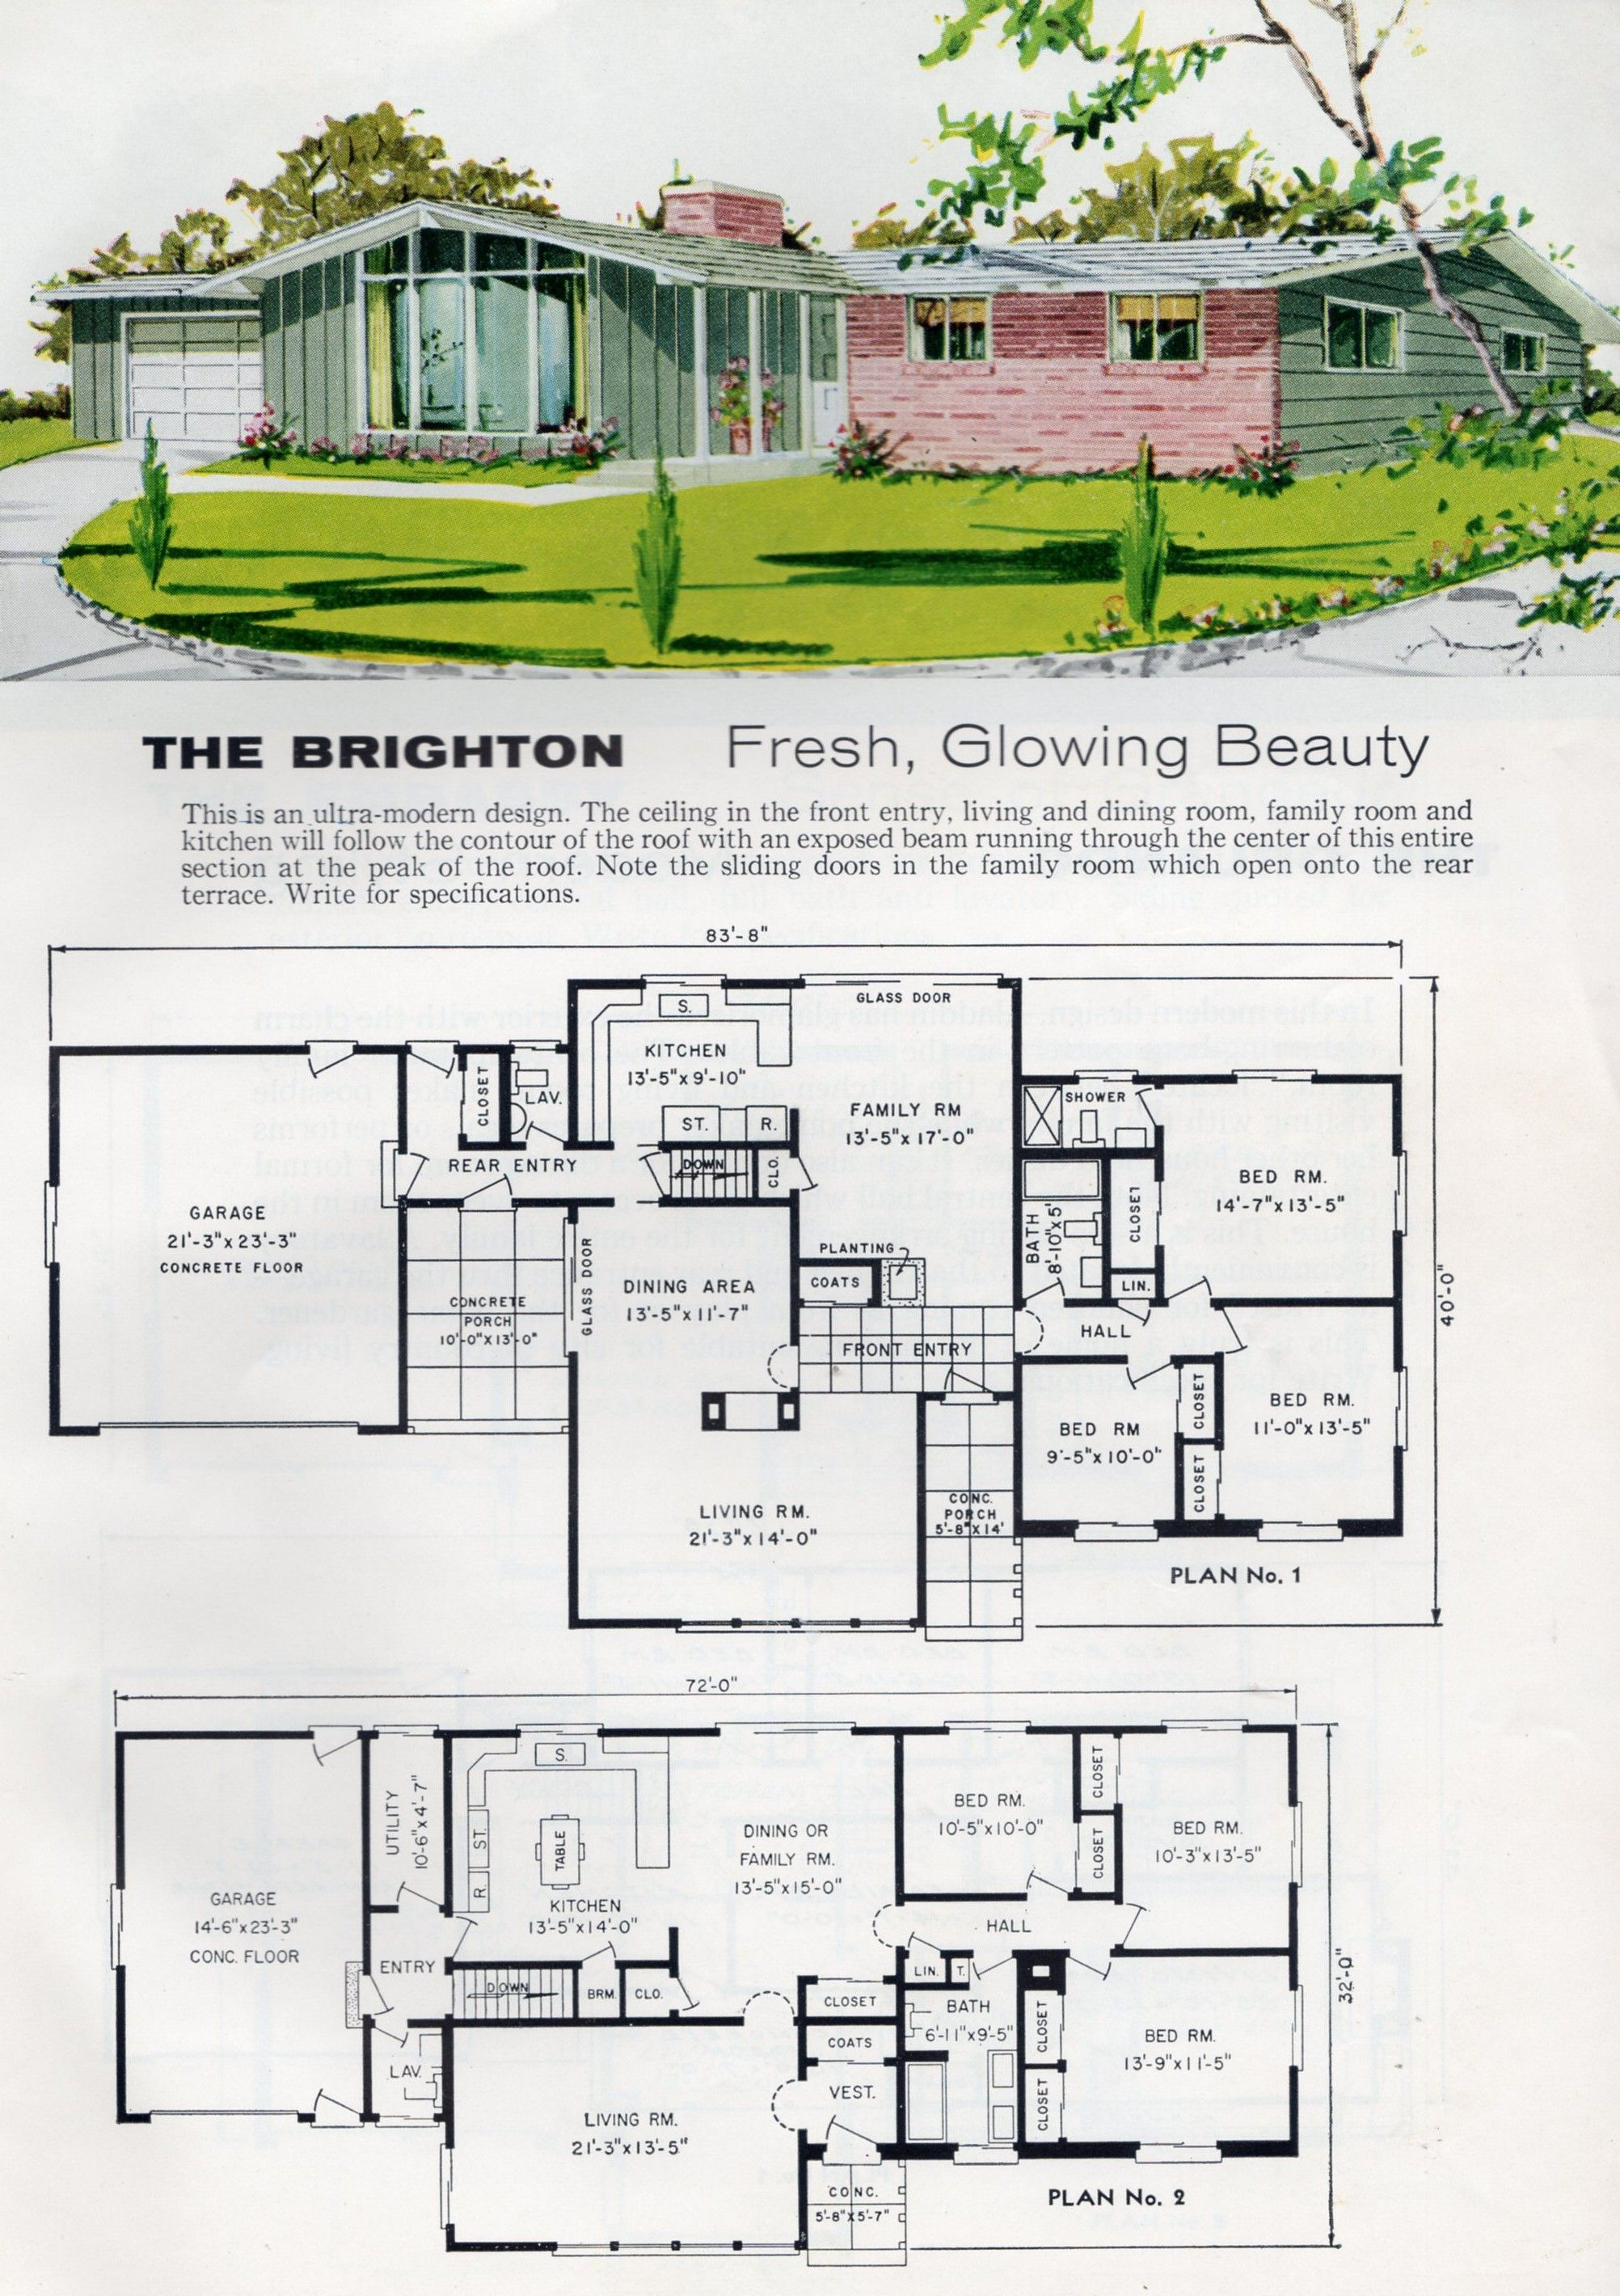 Pin by 61custom on vintage house plans Vintage house